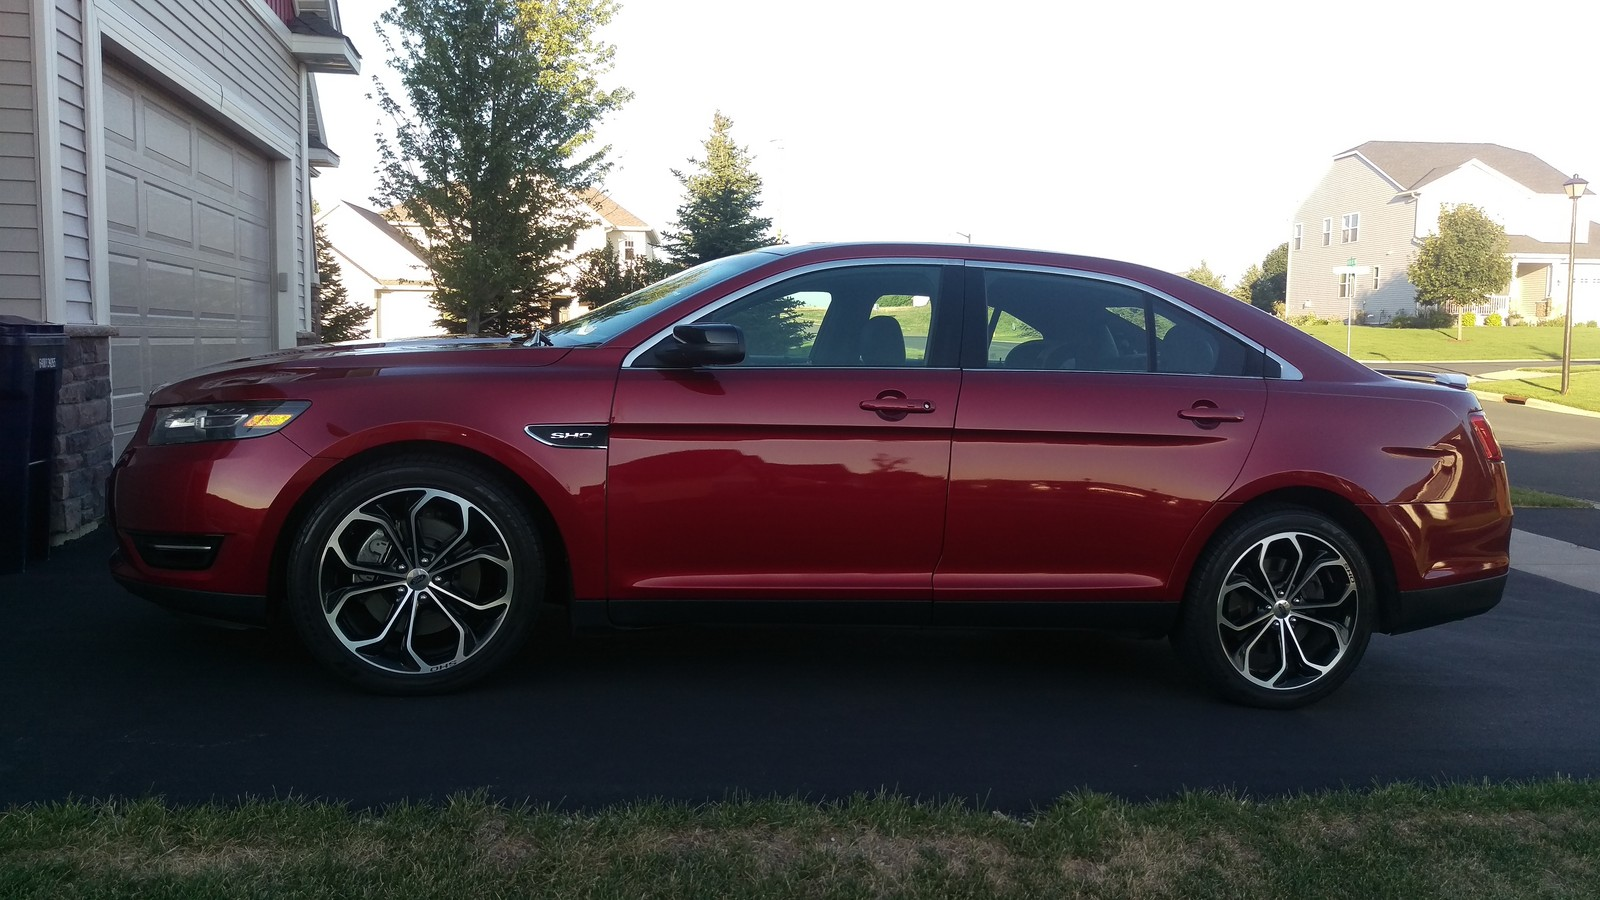 Ruby Red 2015 Ford Taurus SHO